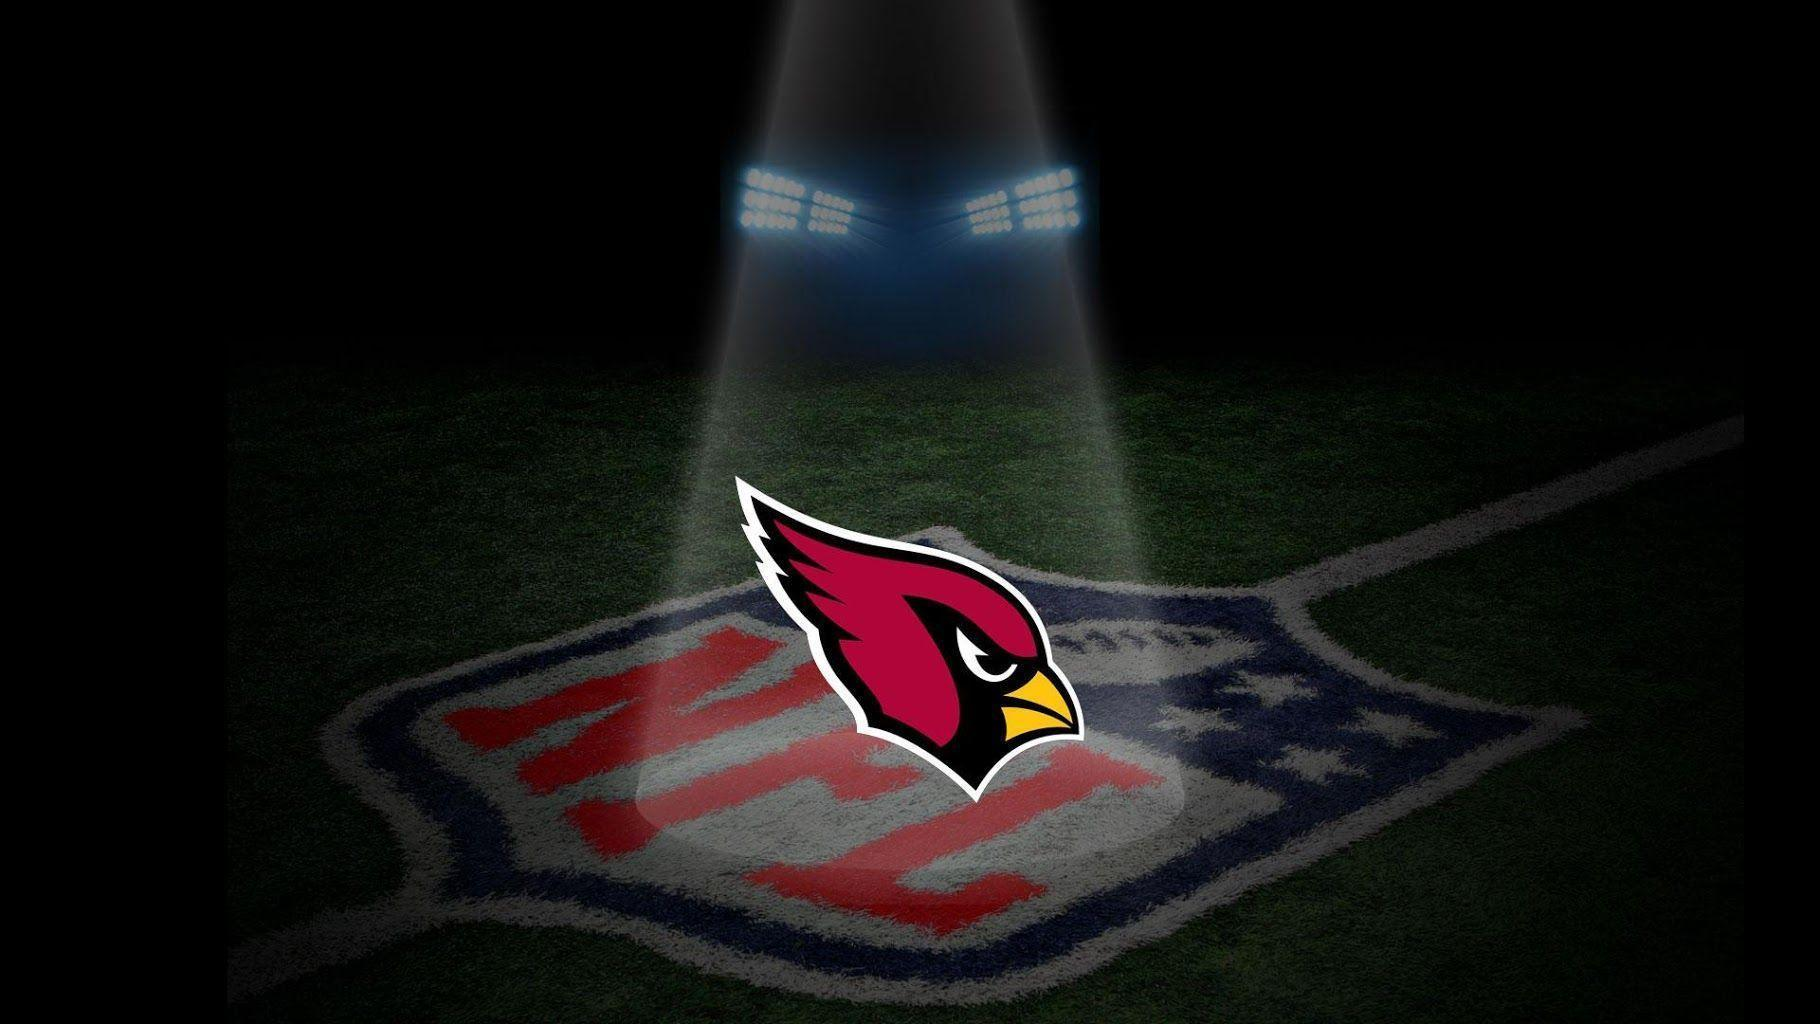 Arizona Cardinals Logo Wallpaper - WallpaperSafari